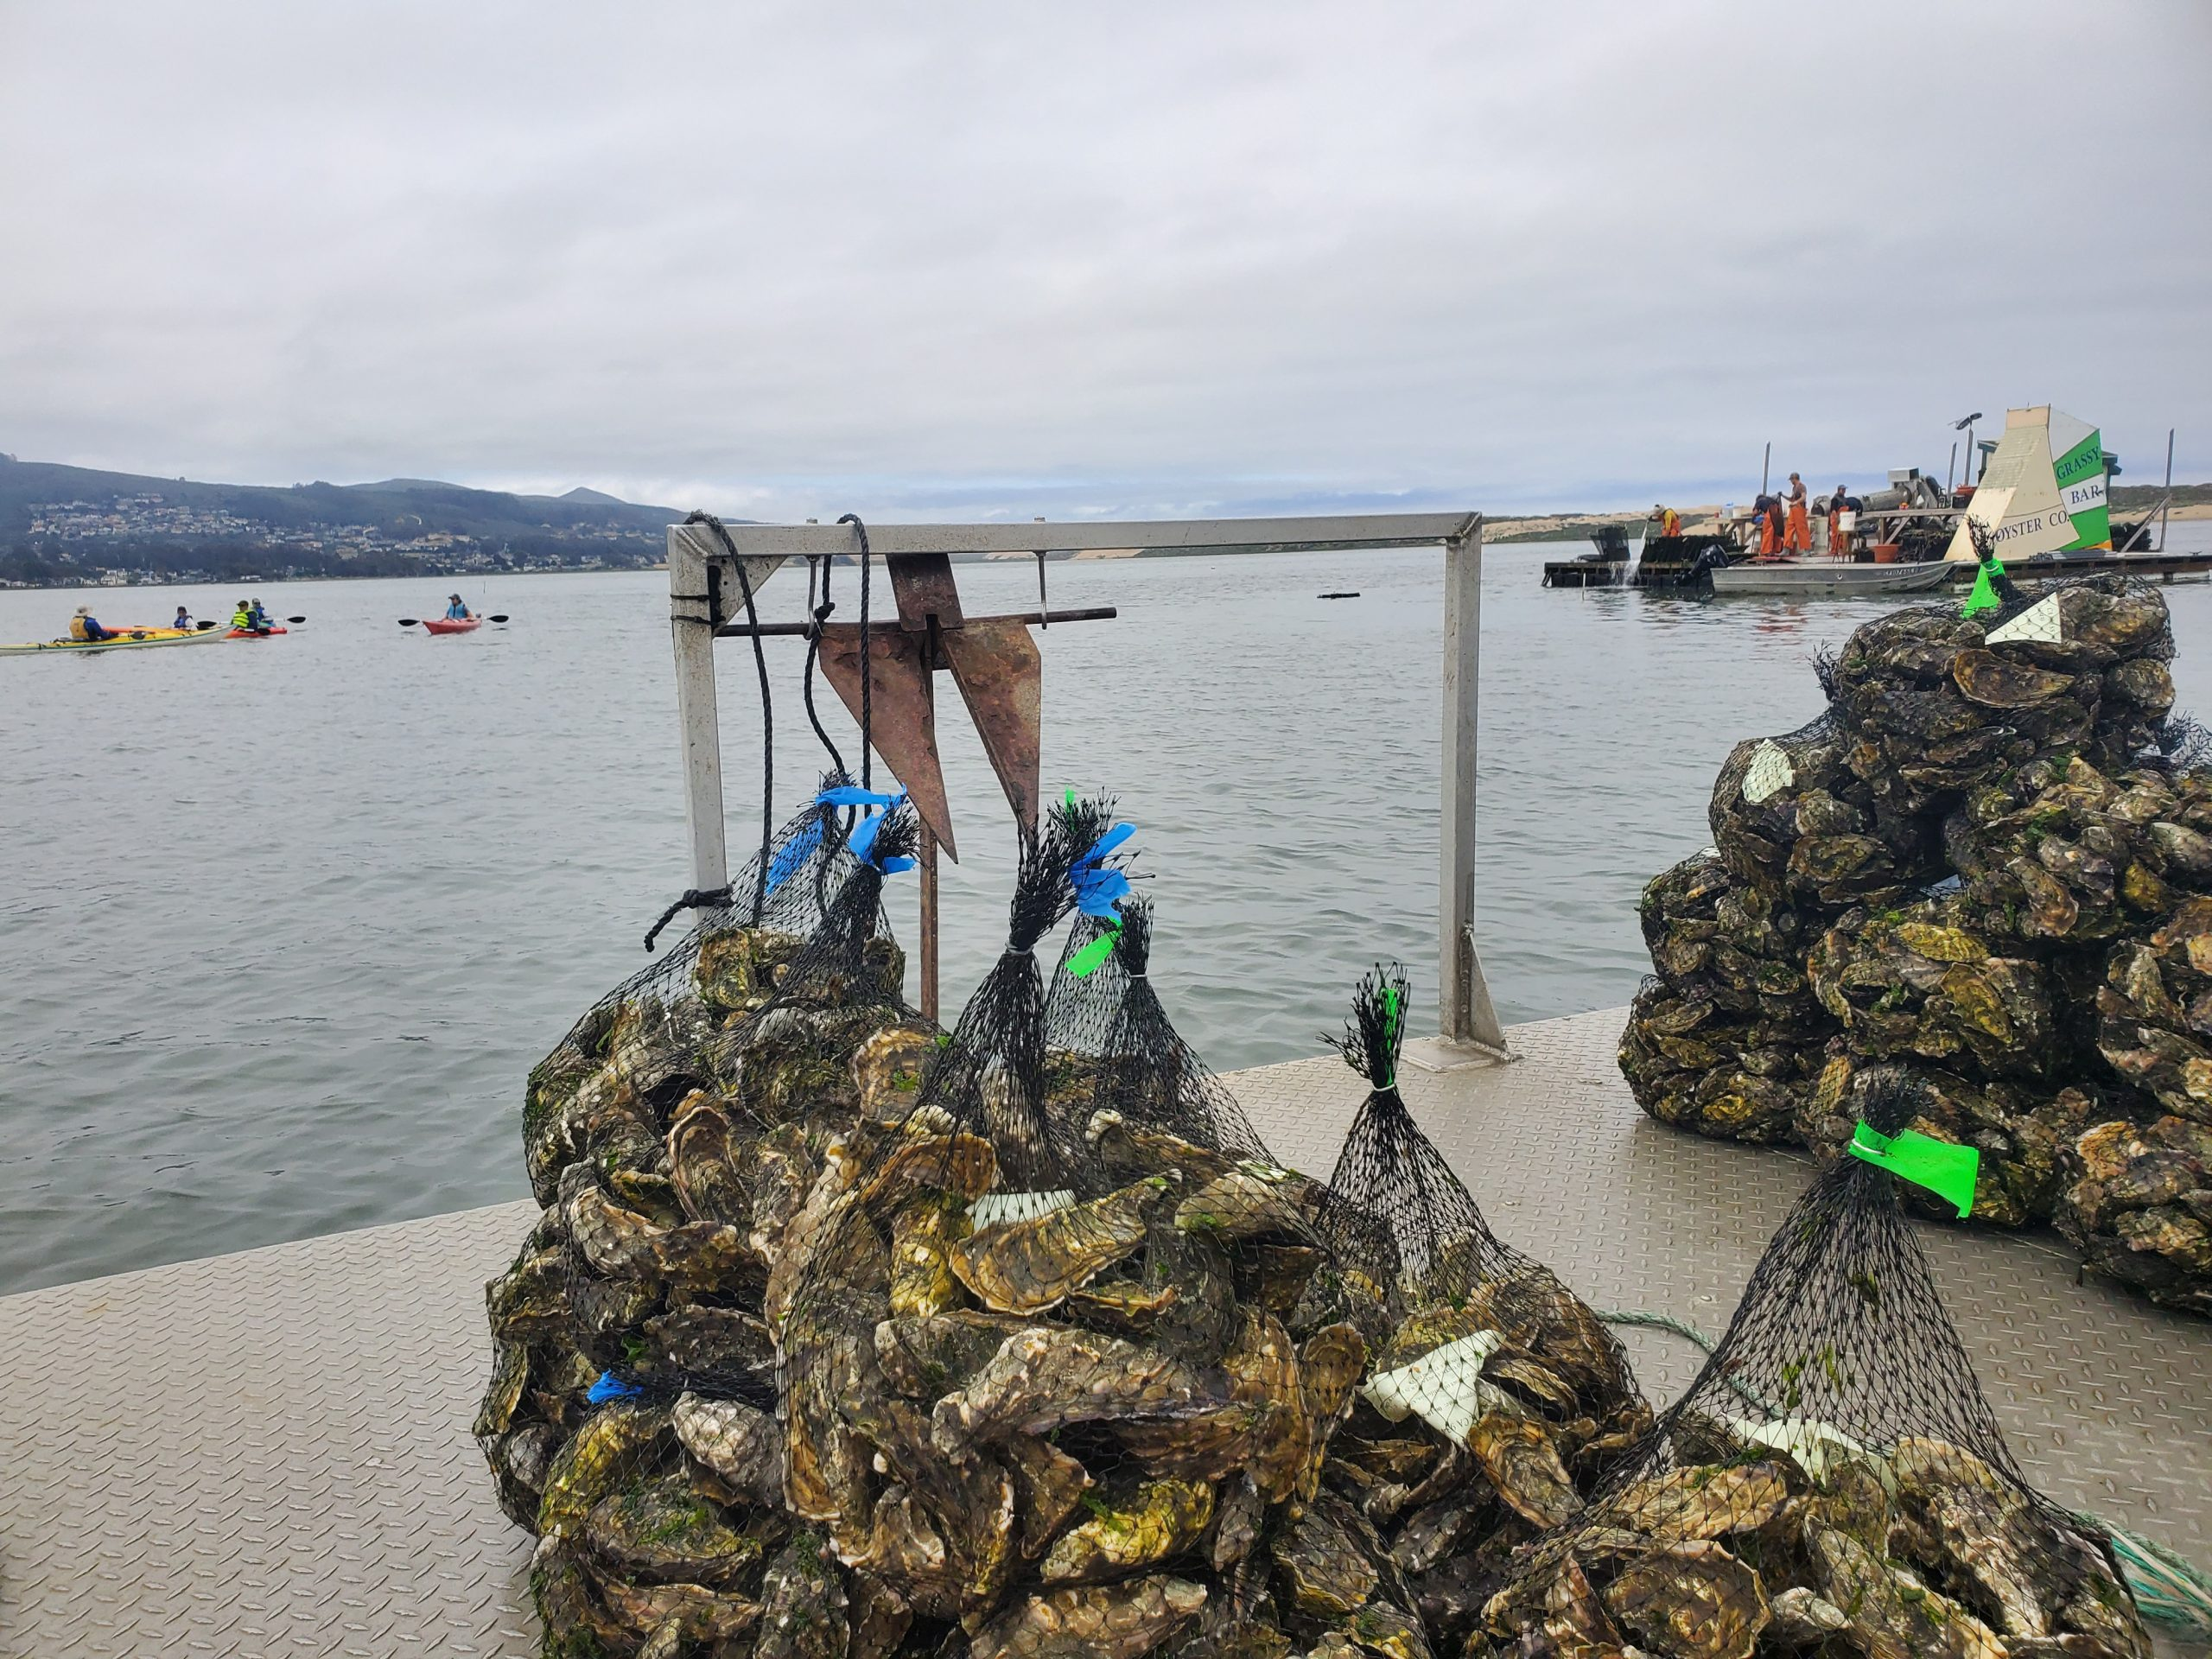 Is the bay clean enough to support commercial shellfish farming?